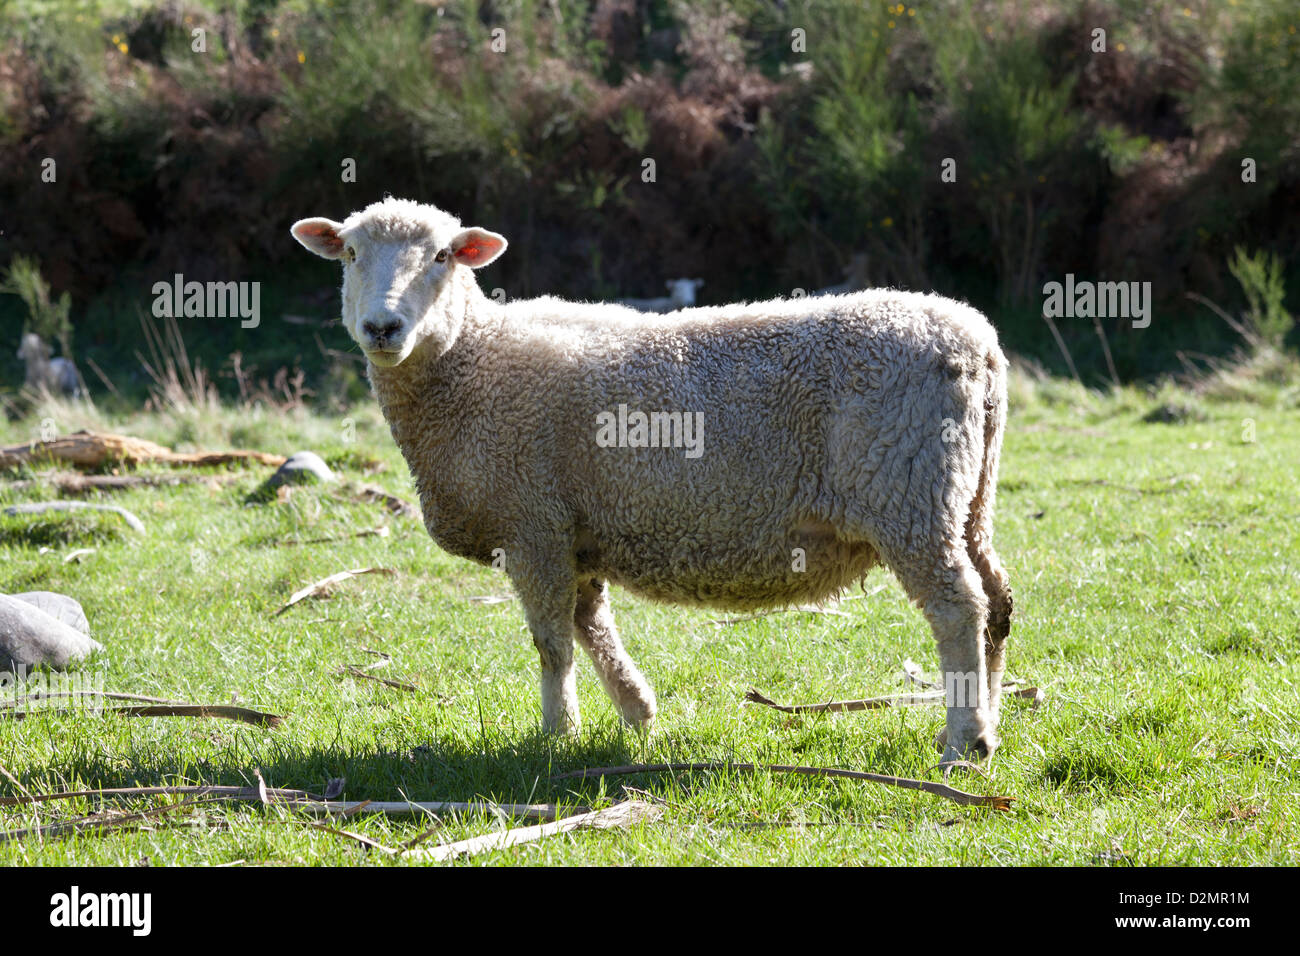 One single sheep in New Zealand - Stock Image